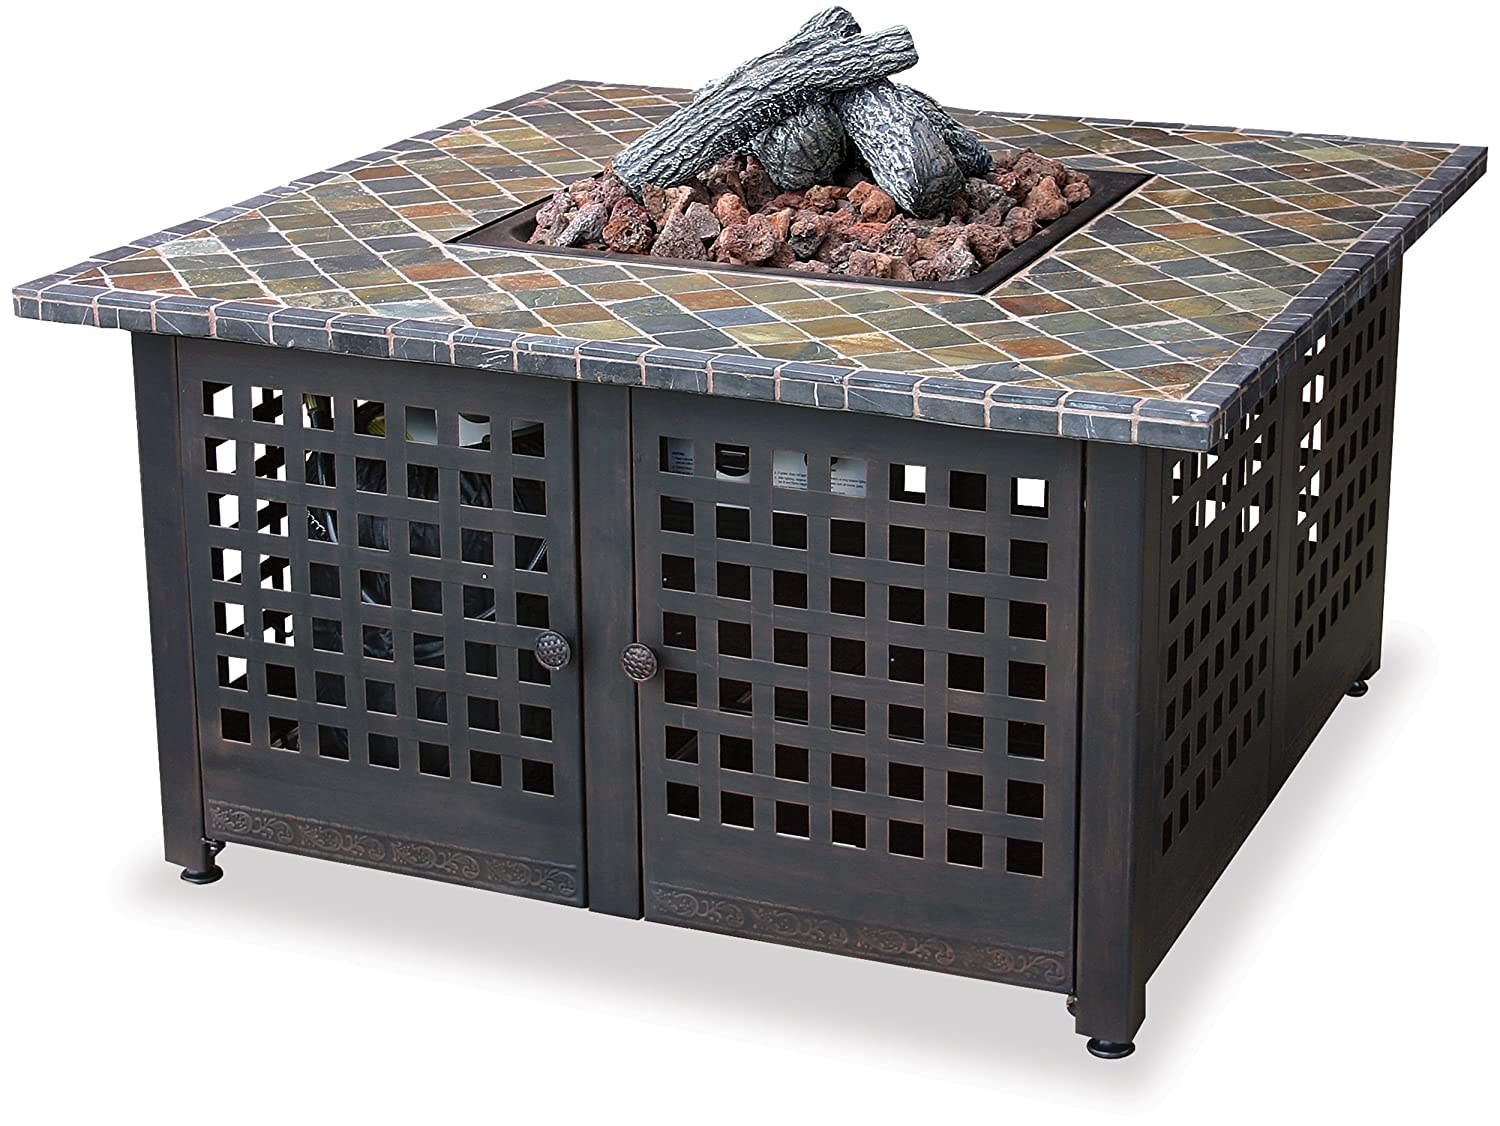 2. Blue Rhino Endless Summer, GAD860SP, LP Gas Outdoor Firebowl with Slate/Marble Mantel